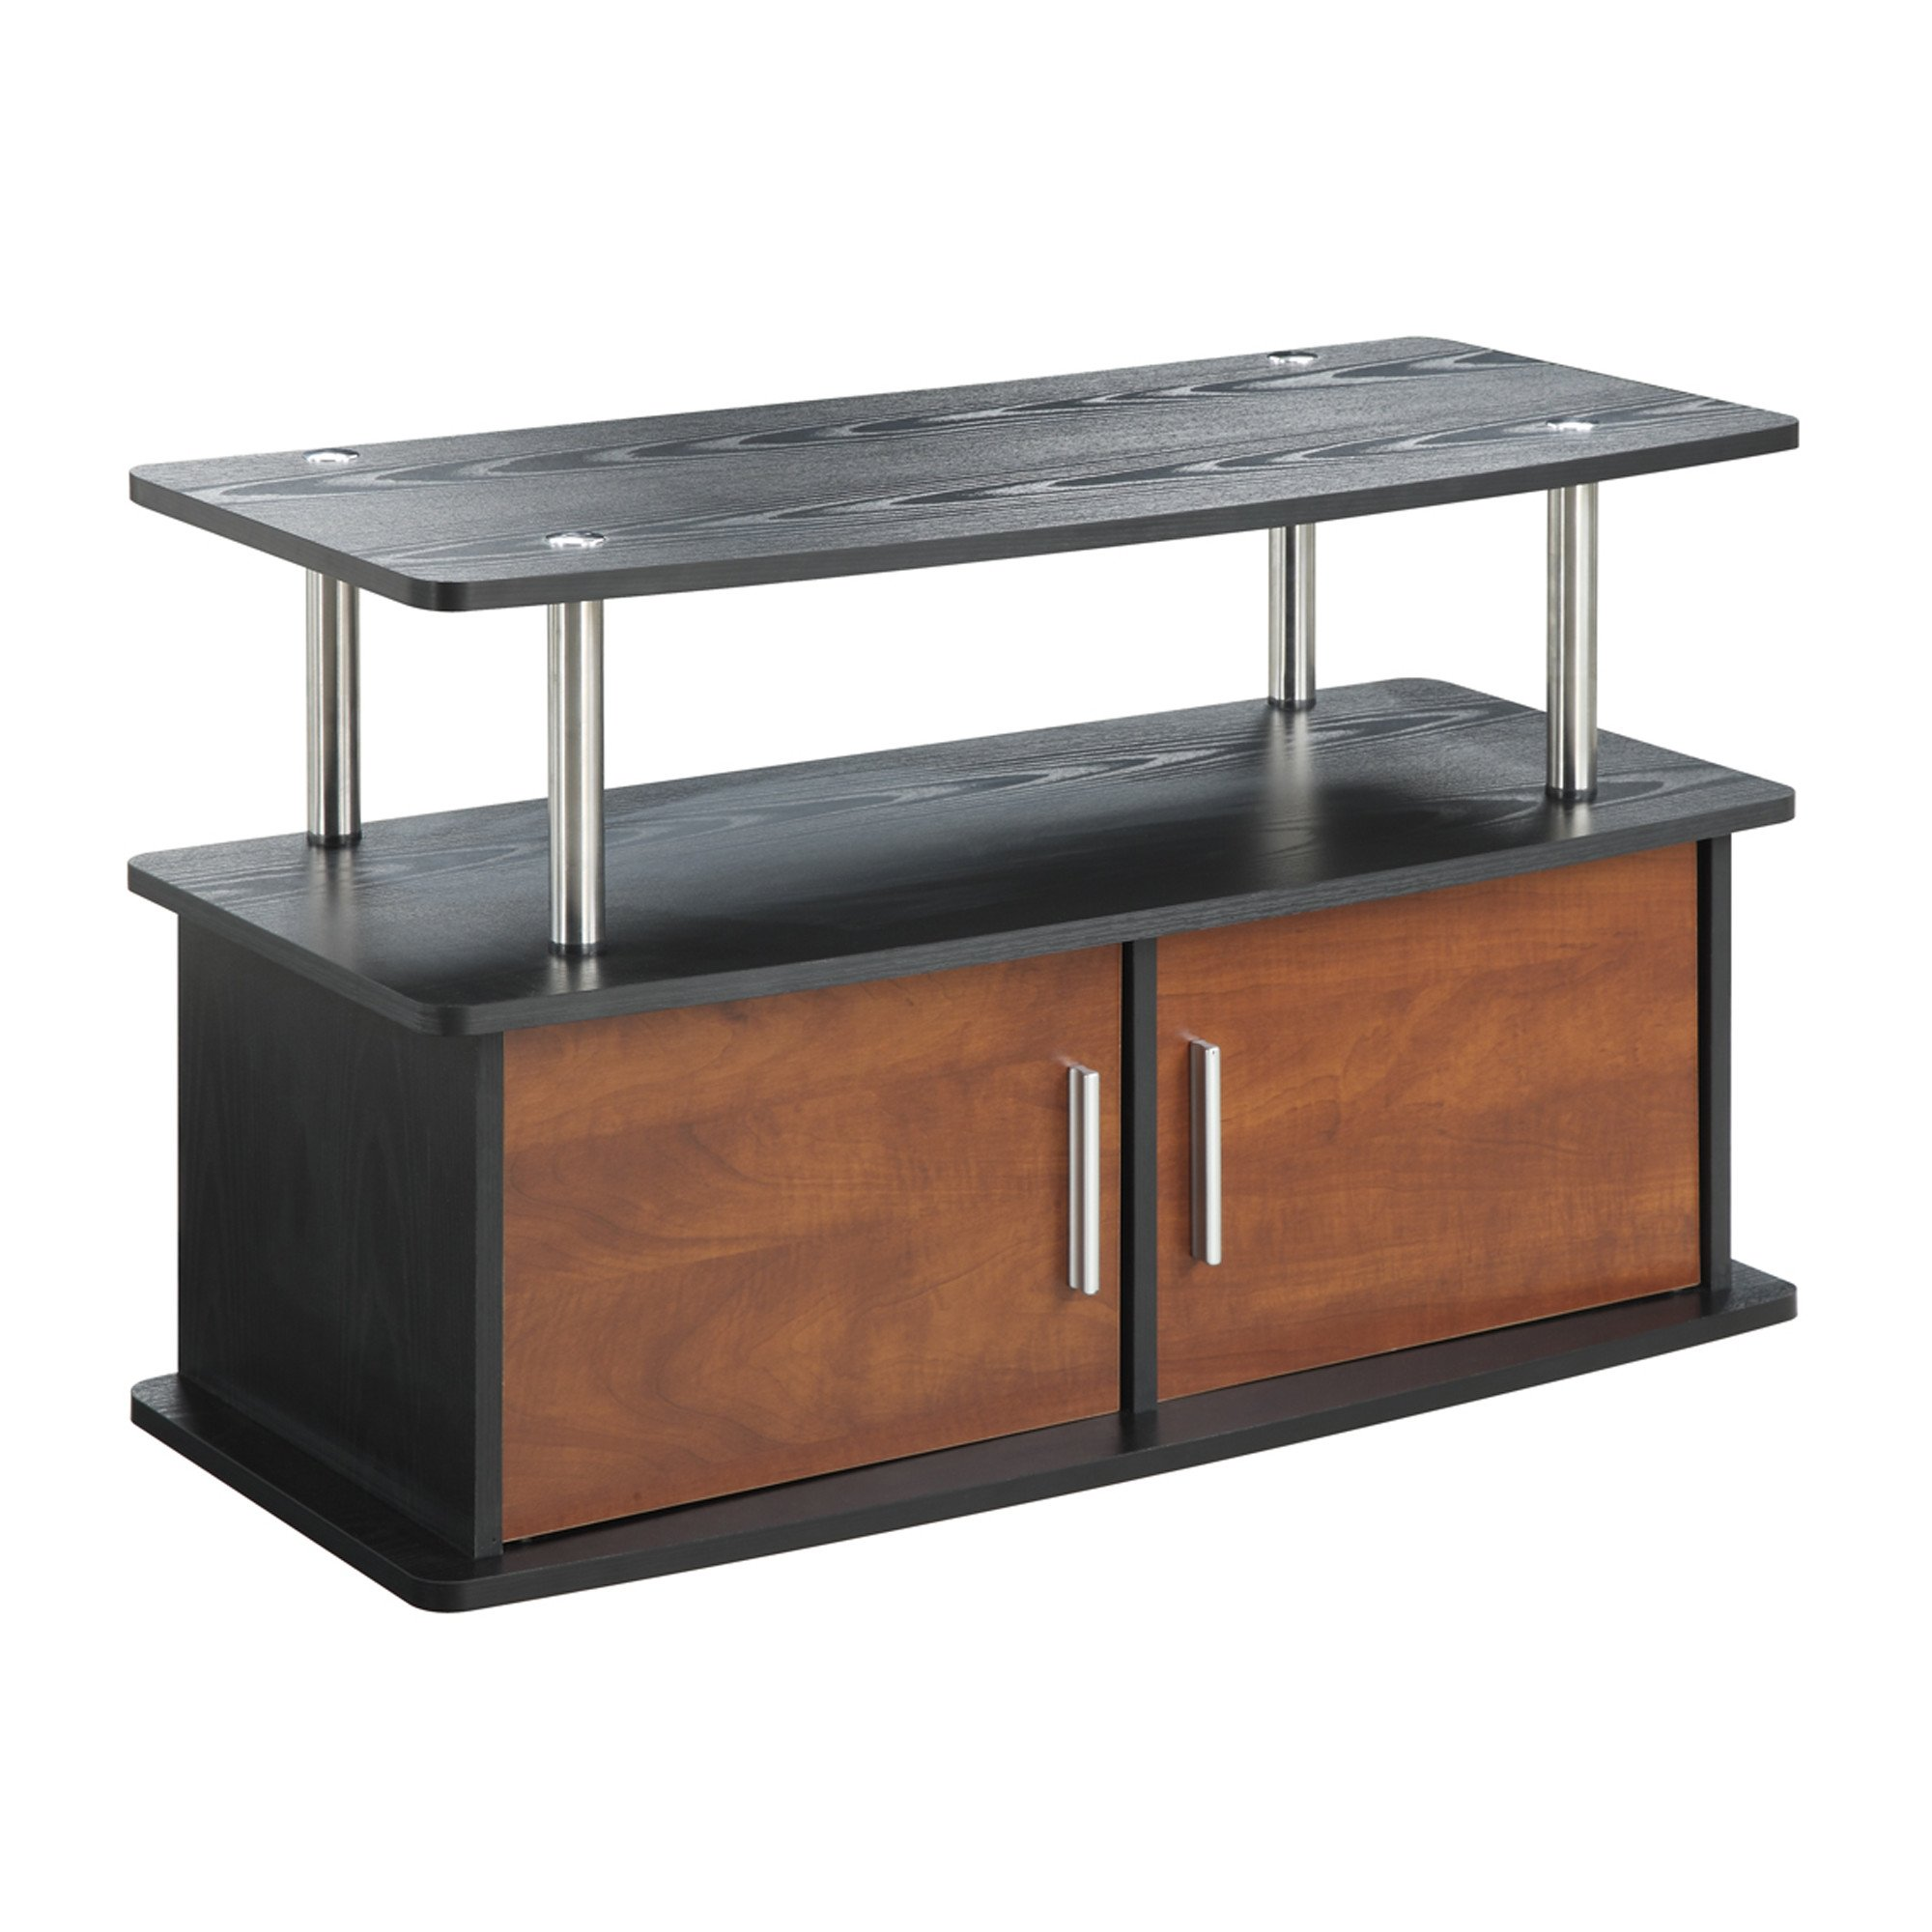 TV Stand Entertainment Center Media Gaming Storage Cabinet for DVDs, CDs, Video Games, Books, Video Devices (Black with Cherry Doors)